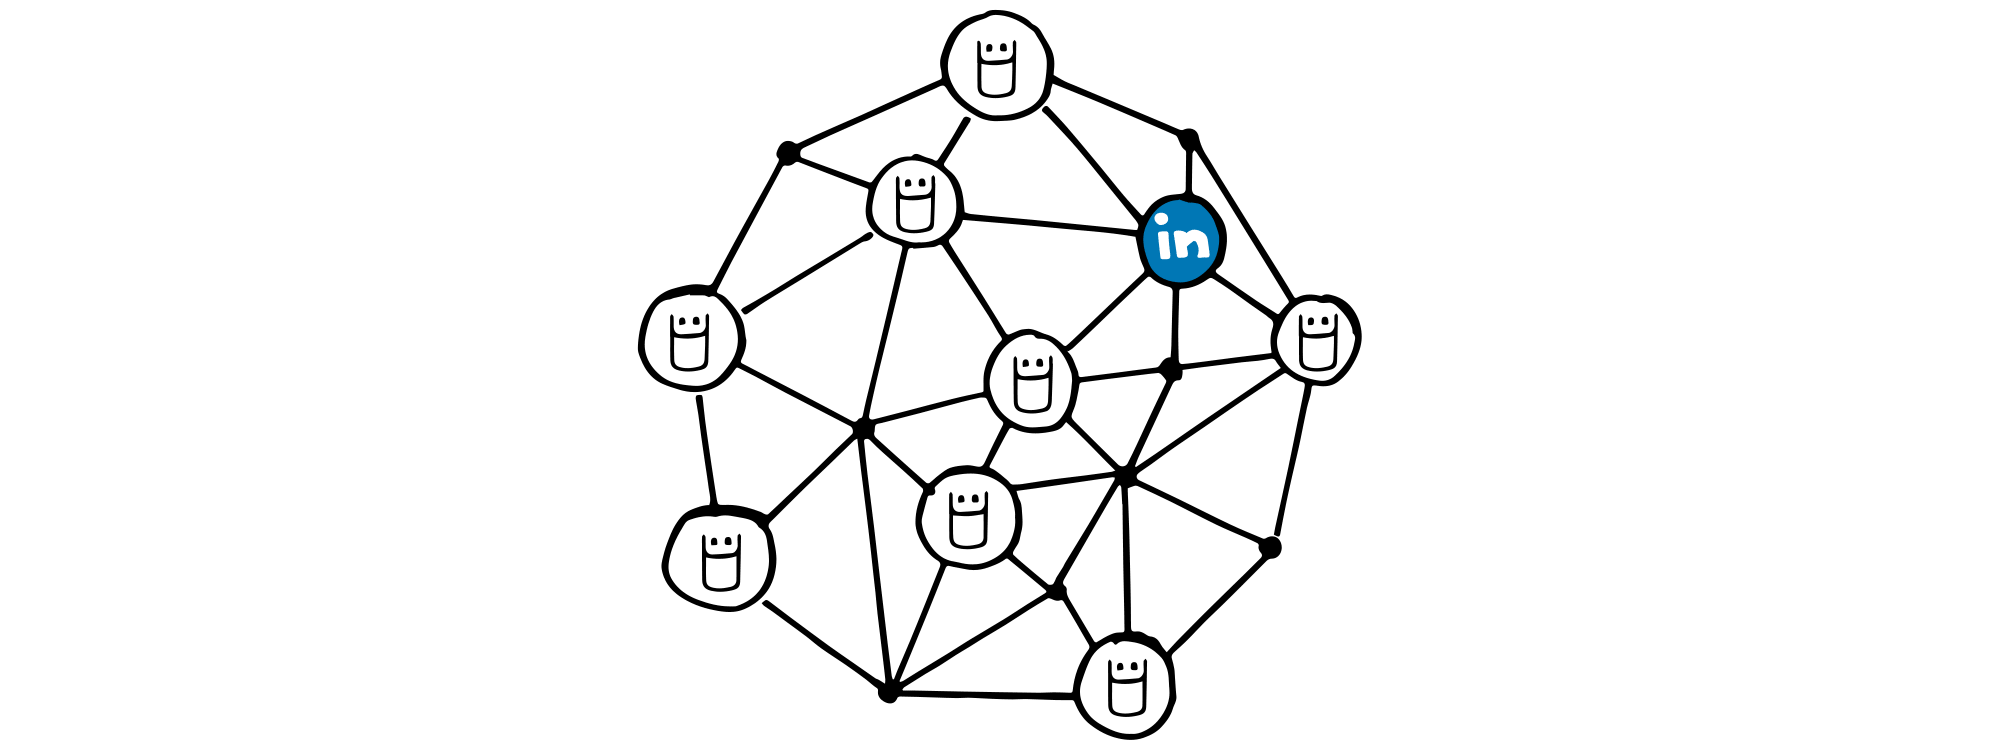 Map of LinkedIn Connections